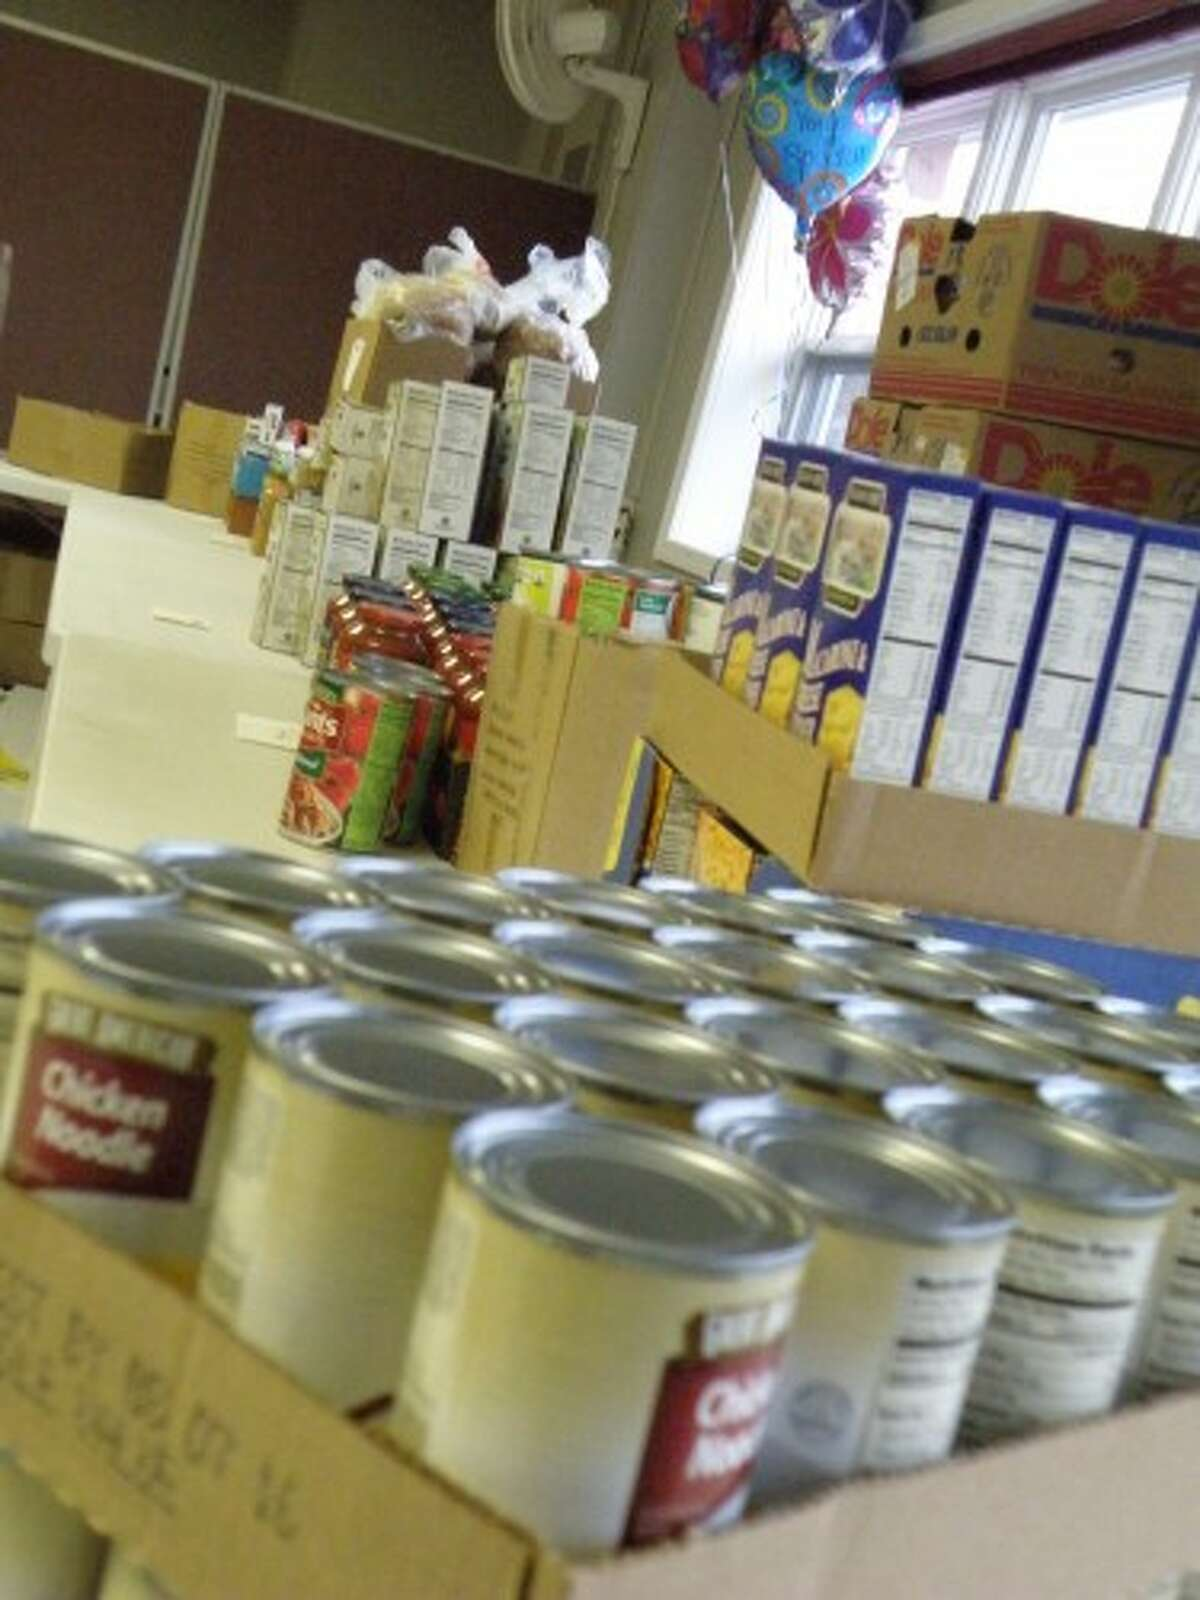 Manistee Senior Center volunteers set up for the monthly food pantry on Friday. (Courtesy photo)